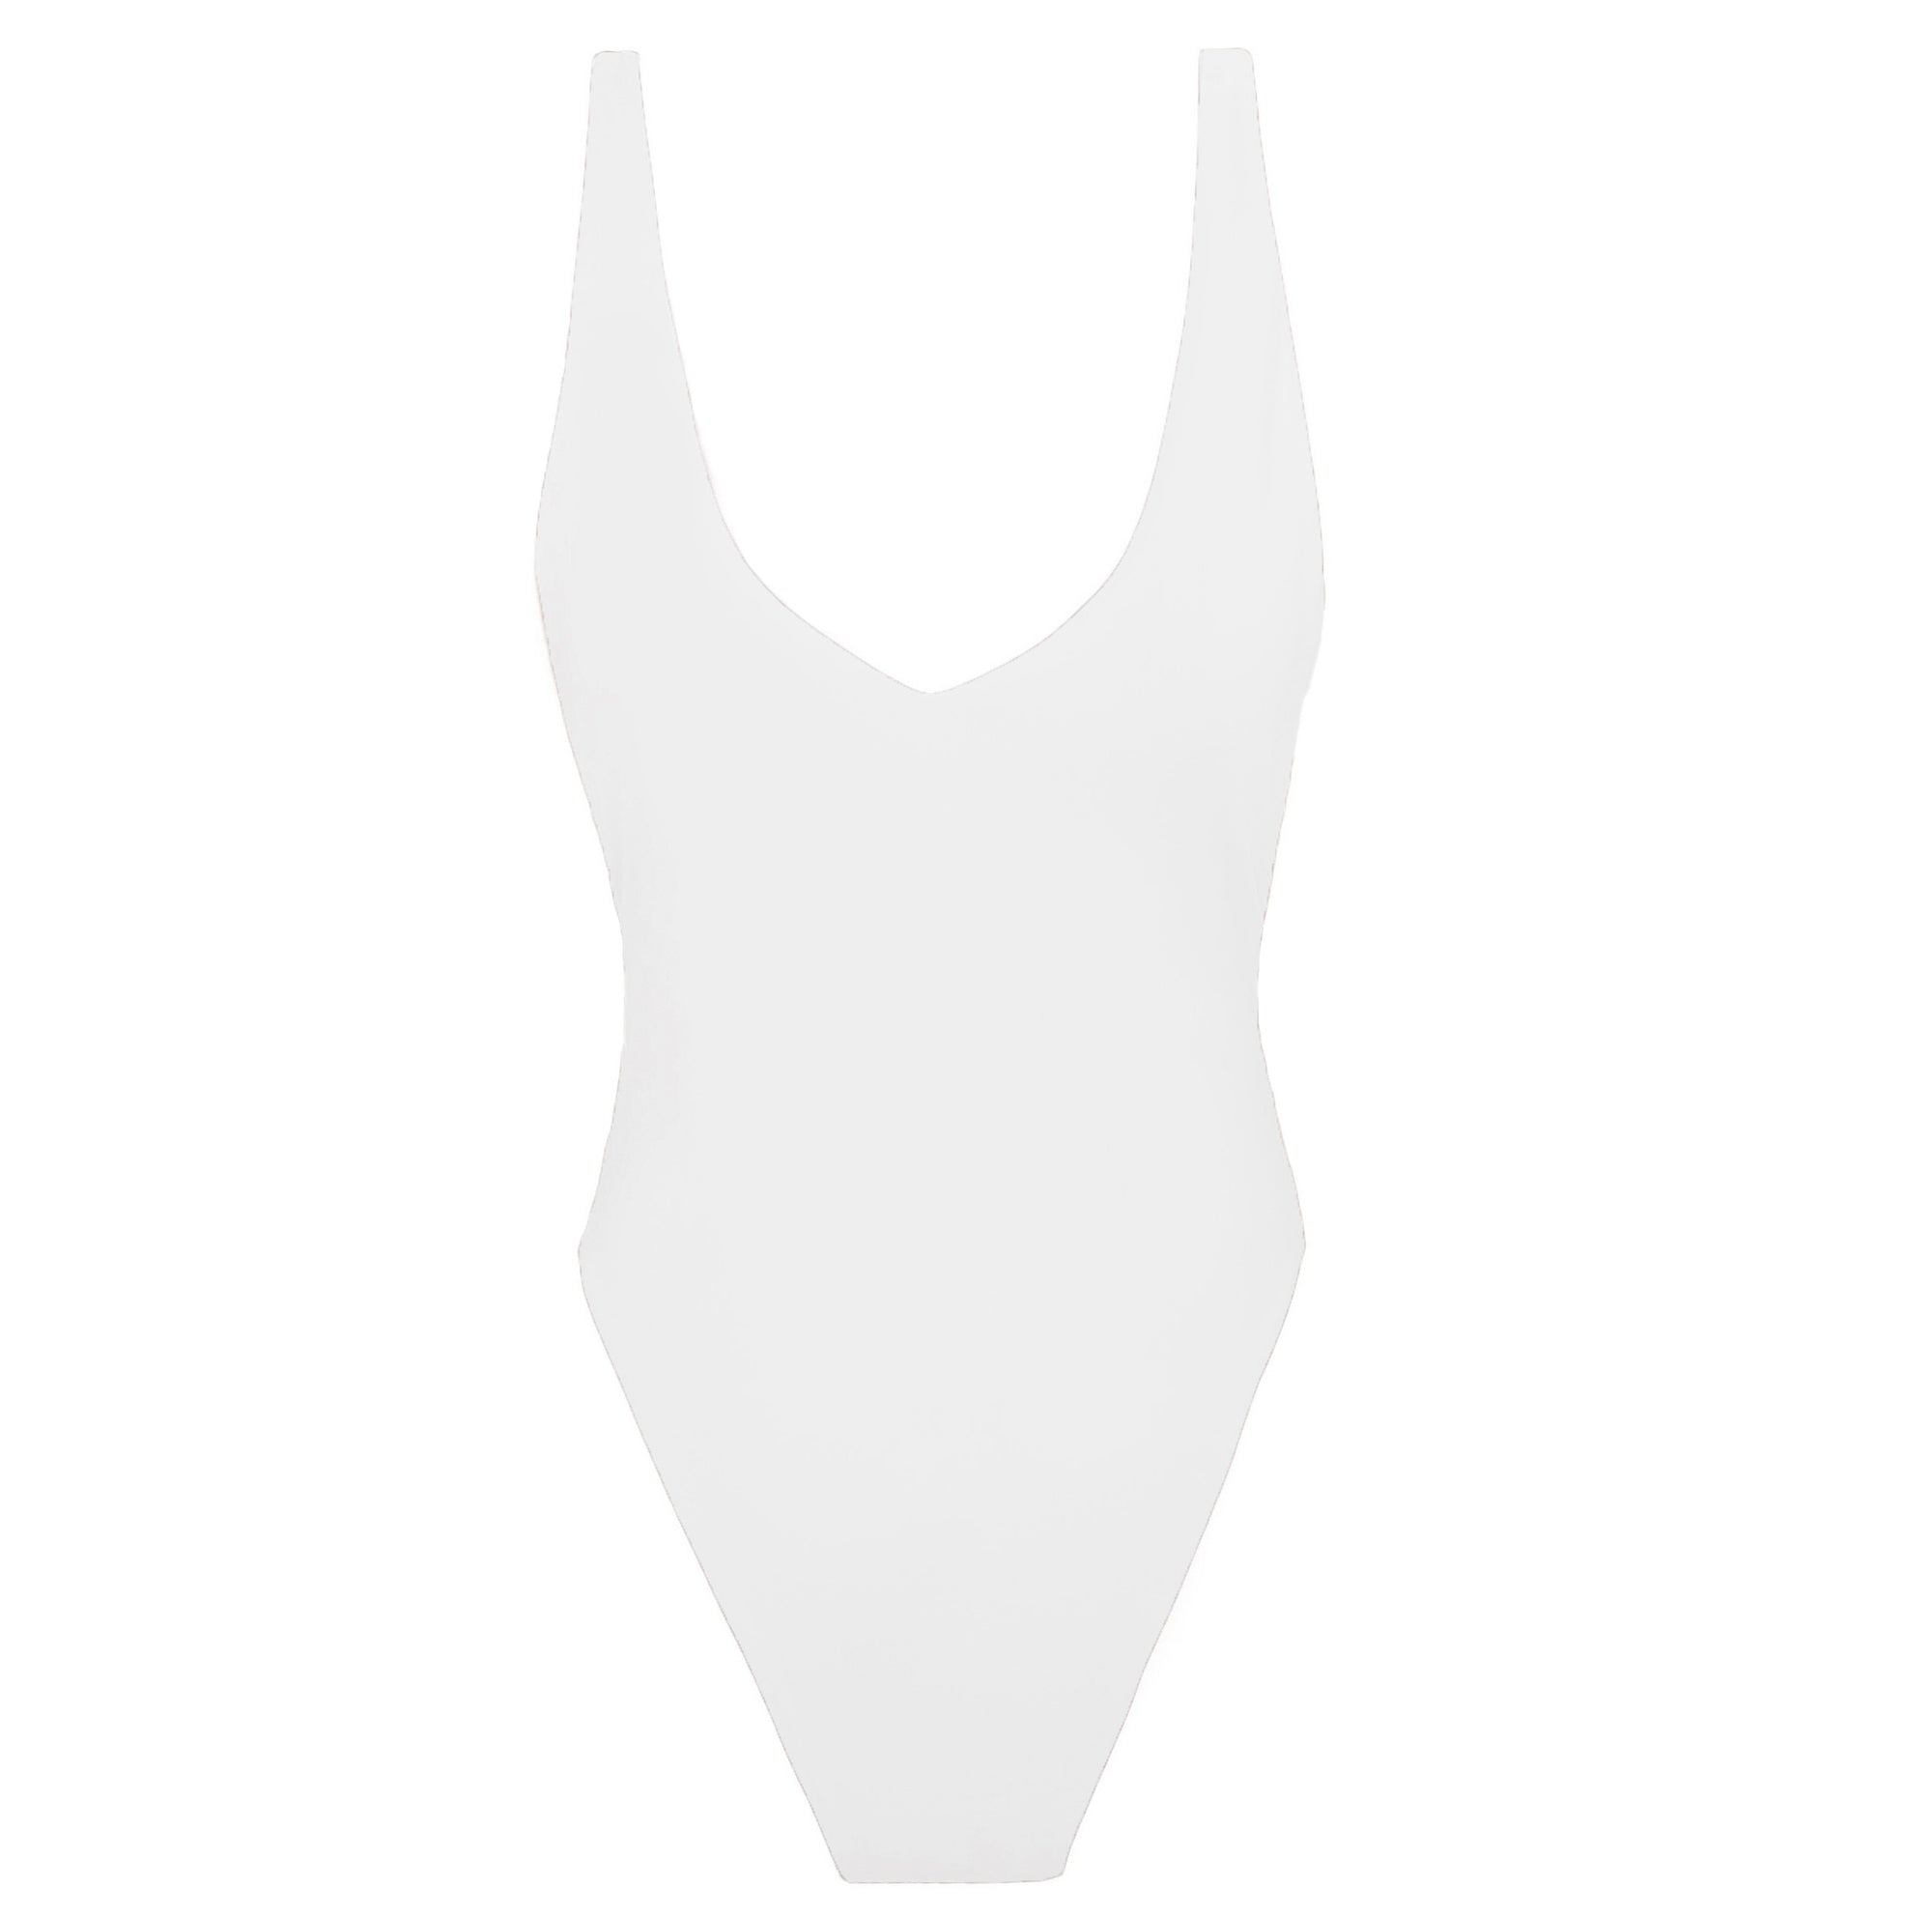 IIXIIST Bone McPherson Bodysuit white seamless lycra one-piece Frankii Swim Frankie Swimwear